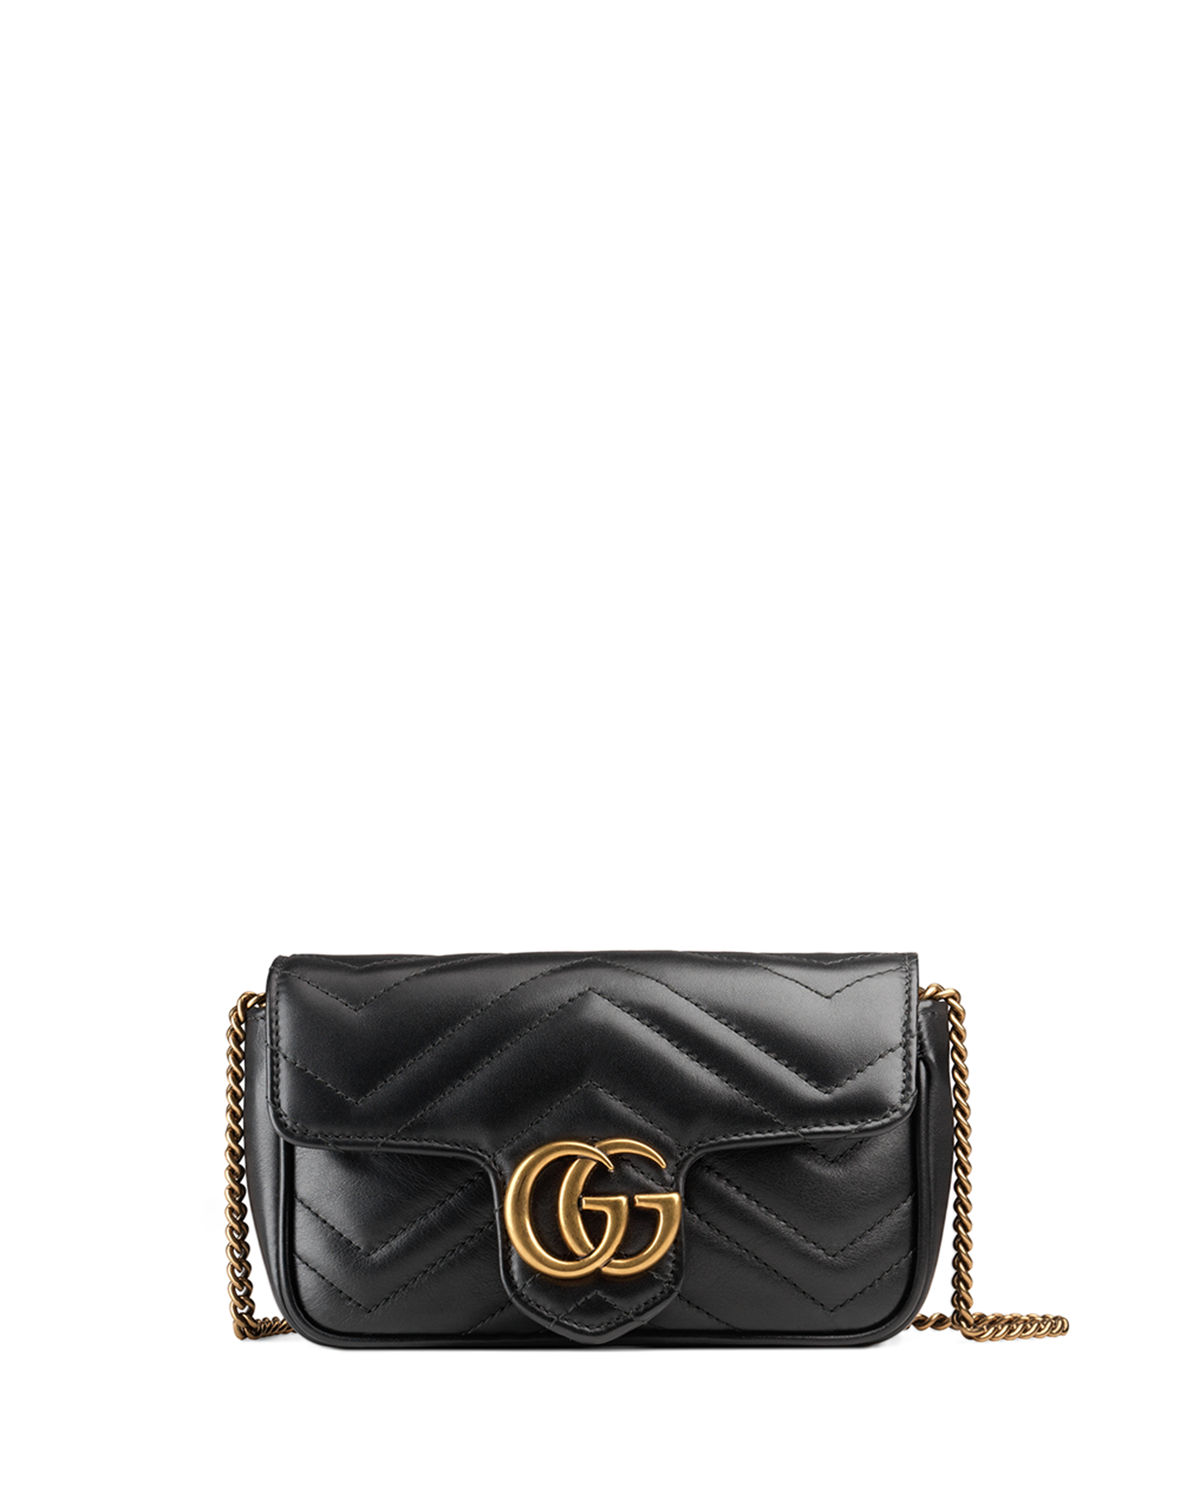 6ac14d8474ef Gucci GG Marmont Matelasse Leather Super Mini Bag | Neiman Marcus